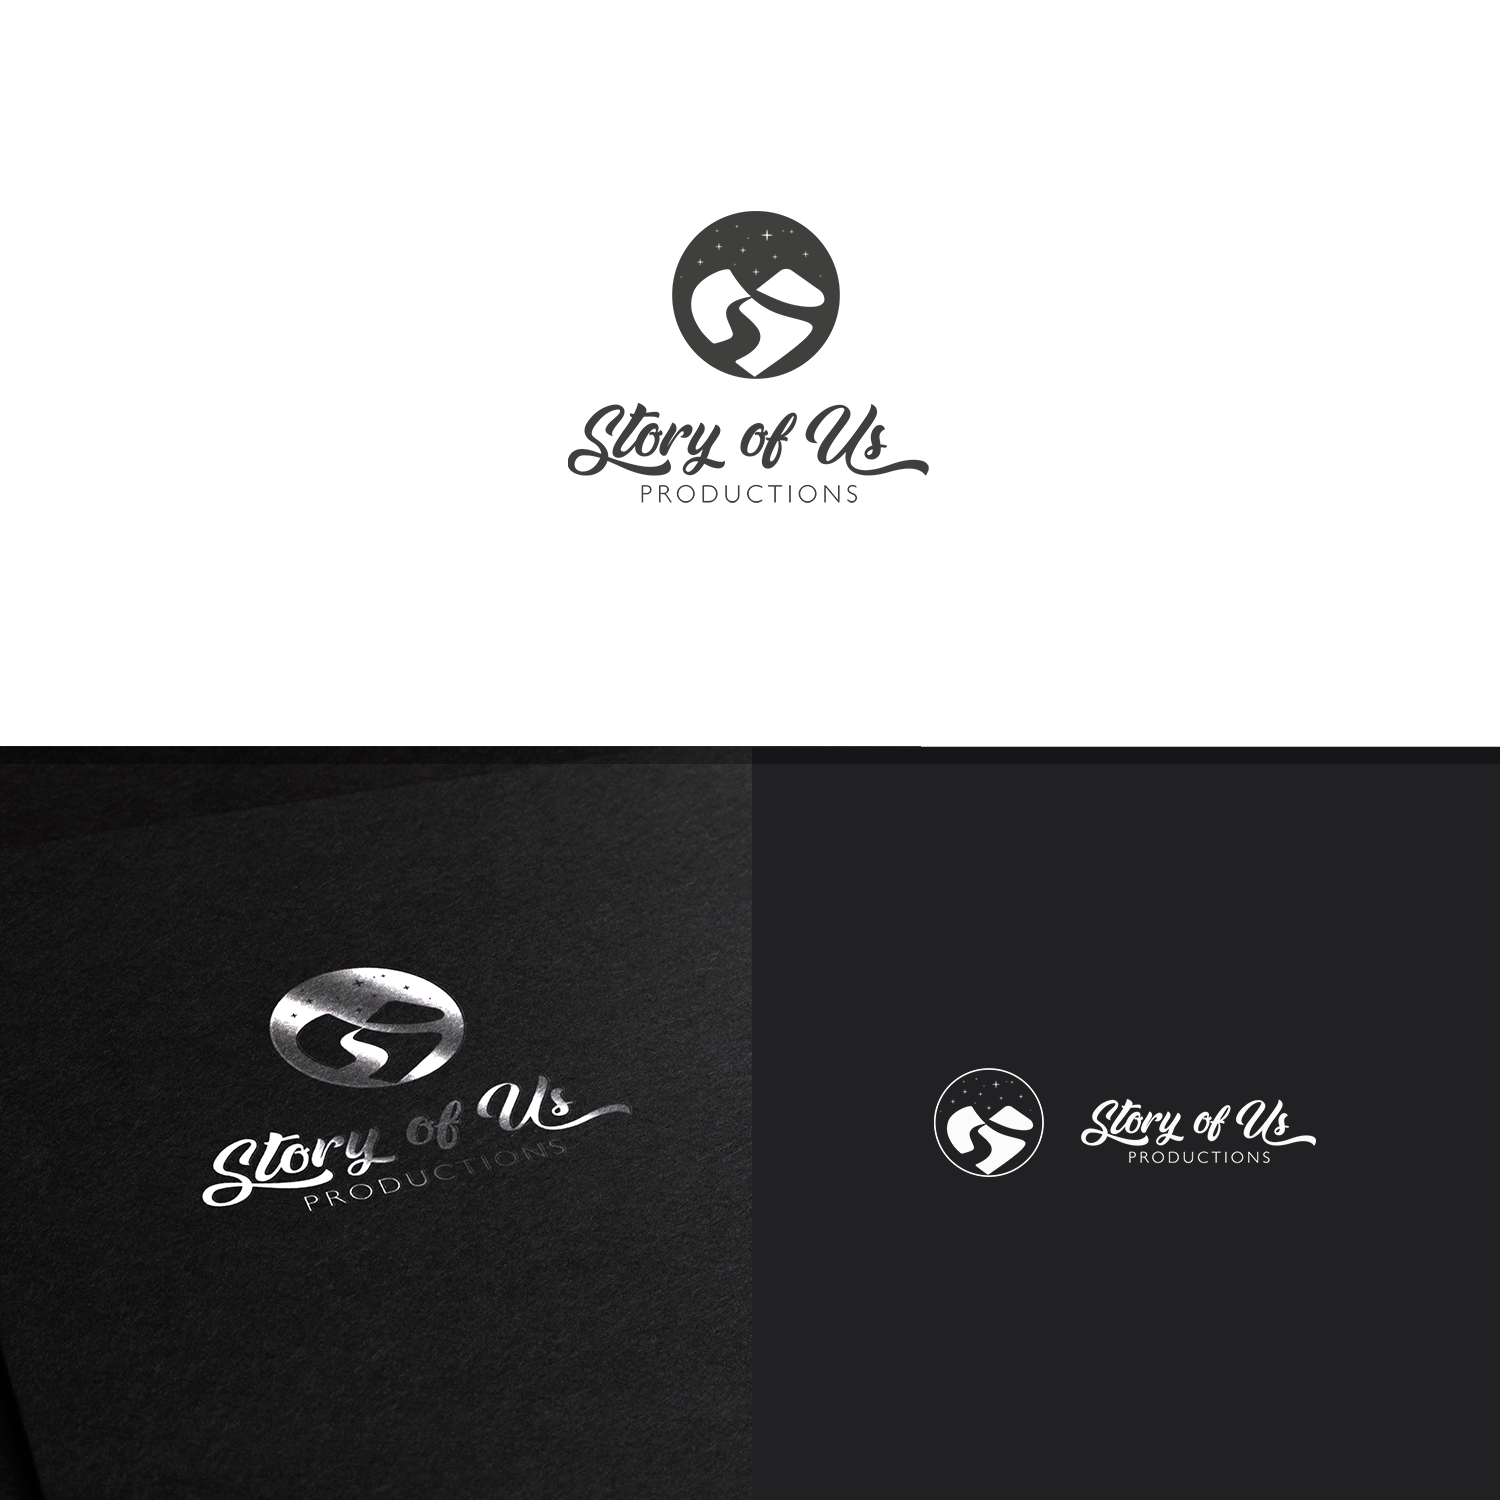 Logo design for a Wedding, Private or Corporate Conventions by Lagoas